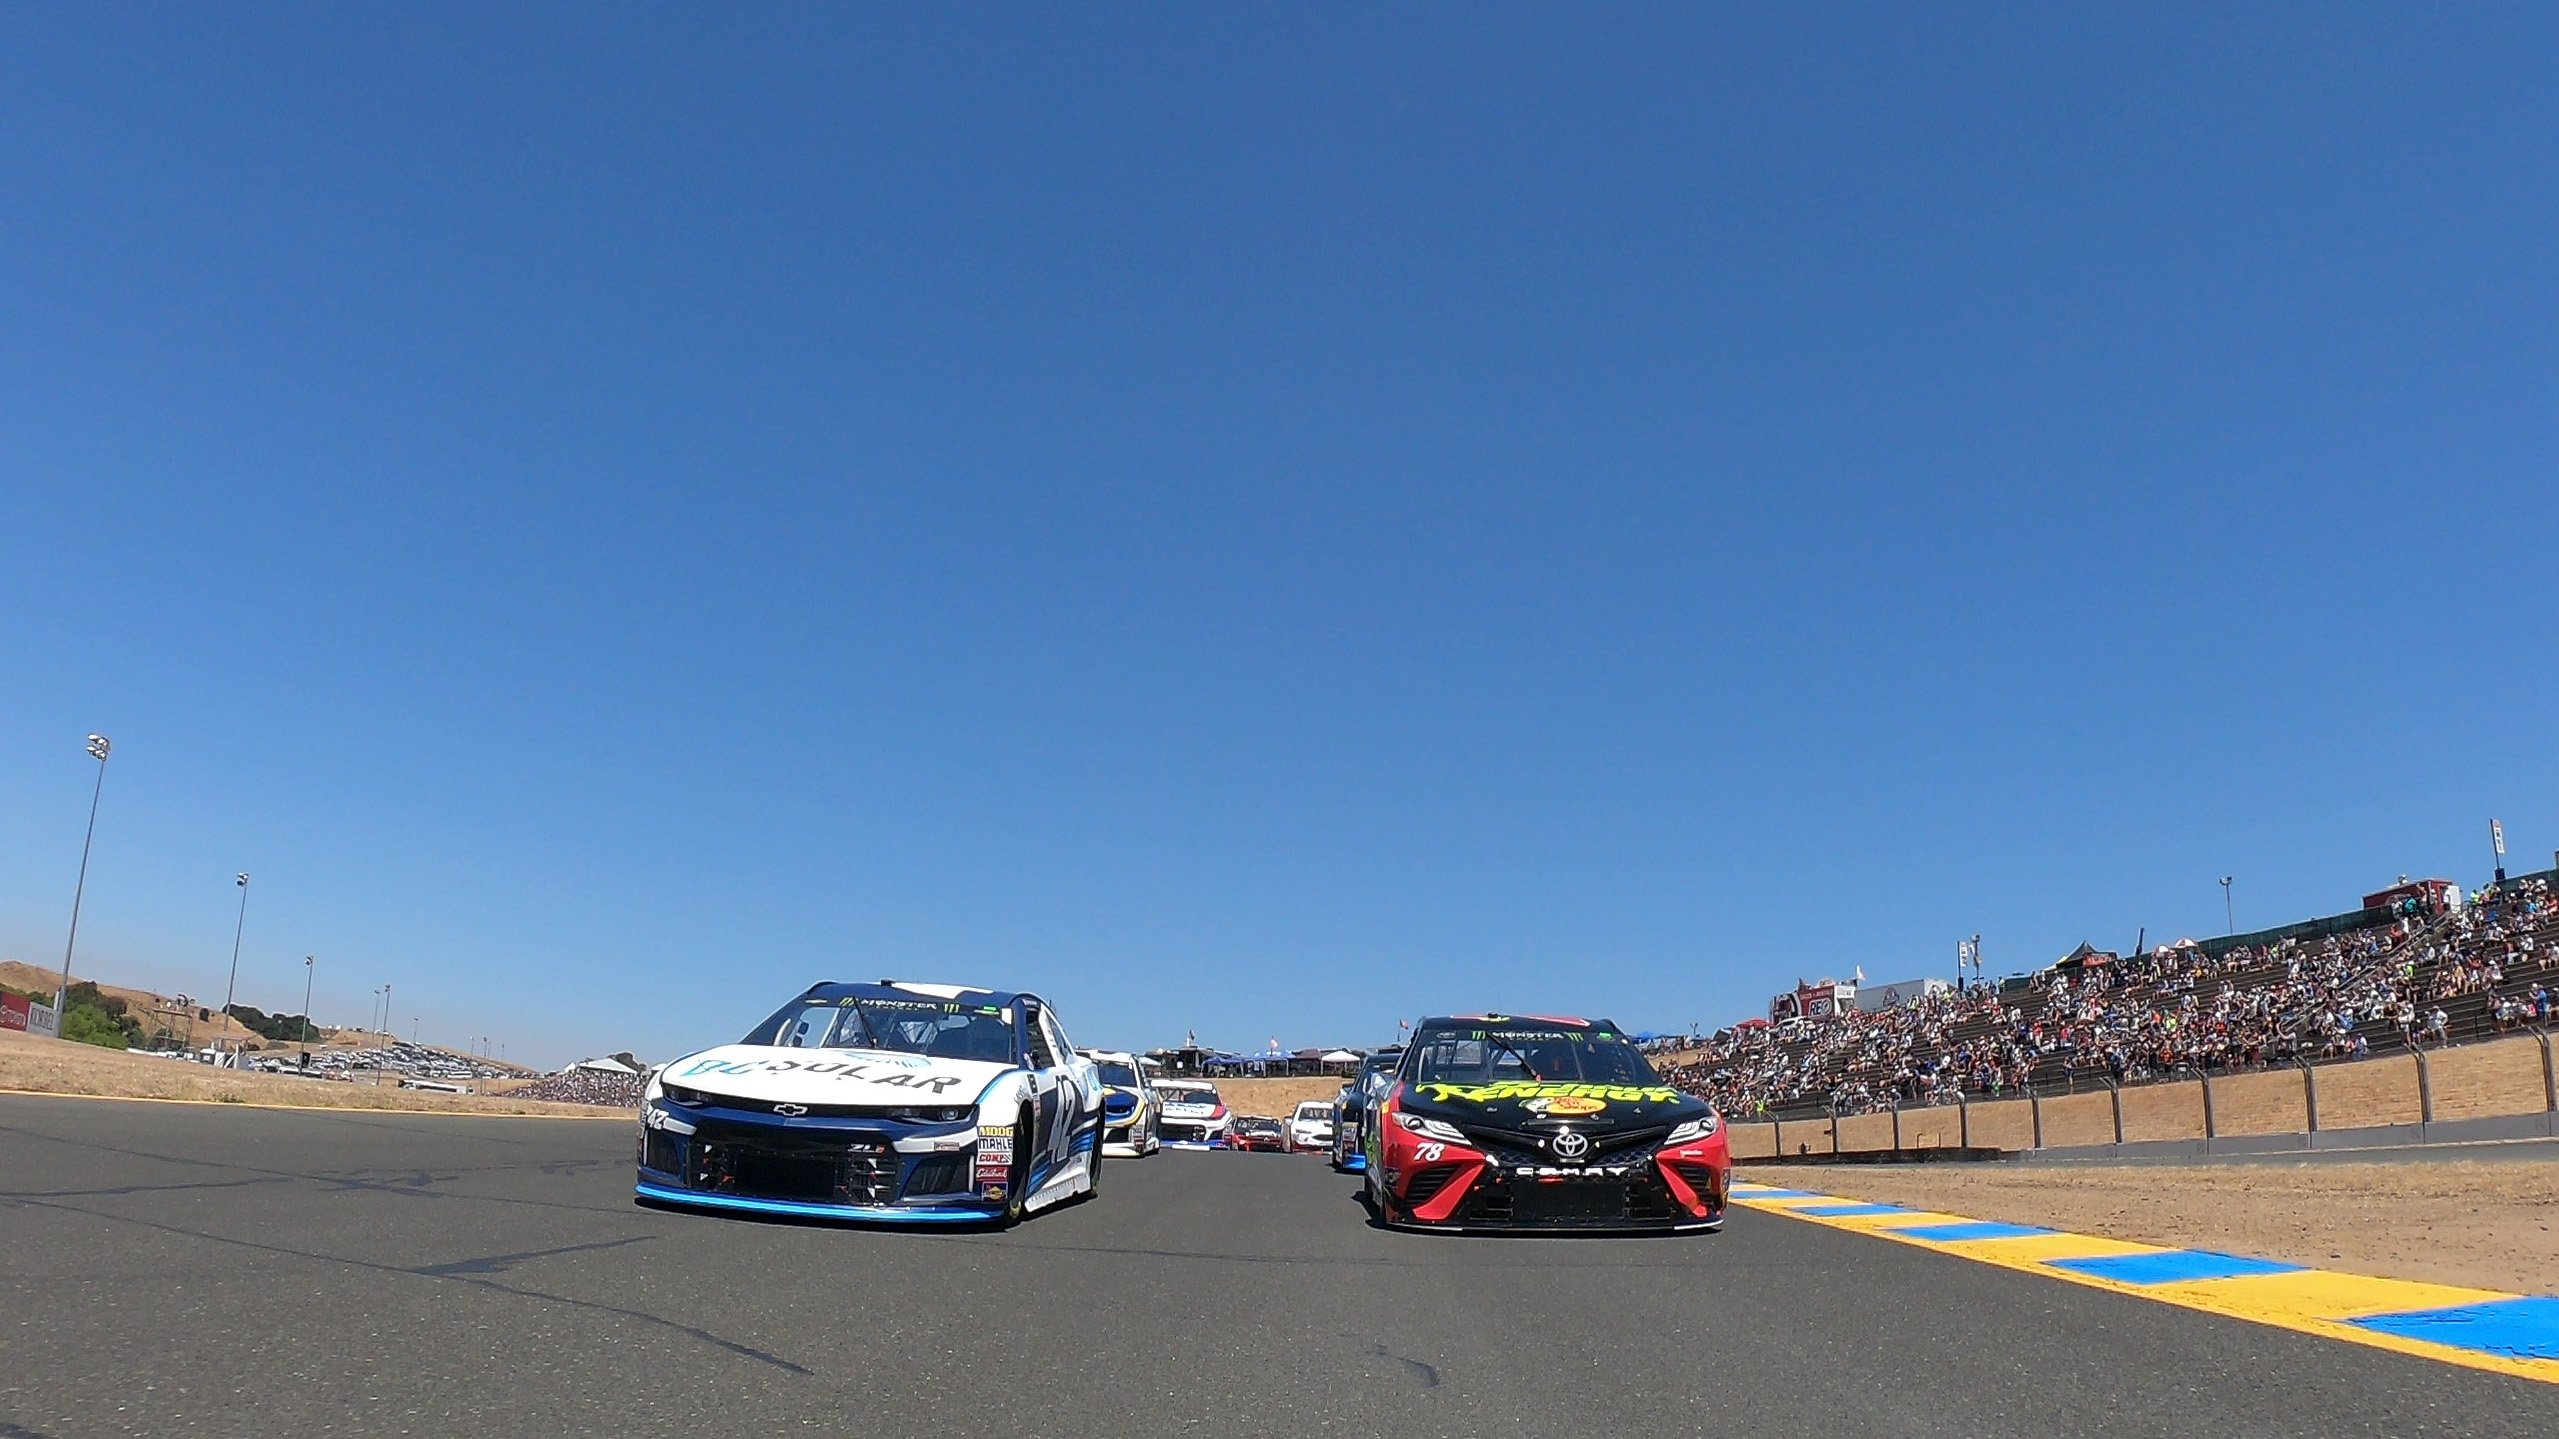 Martin Truex Jr and Martin Truex Jr at Sonoma Raceway